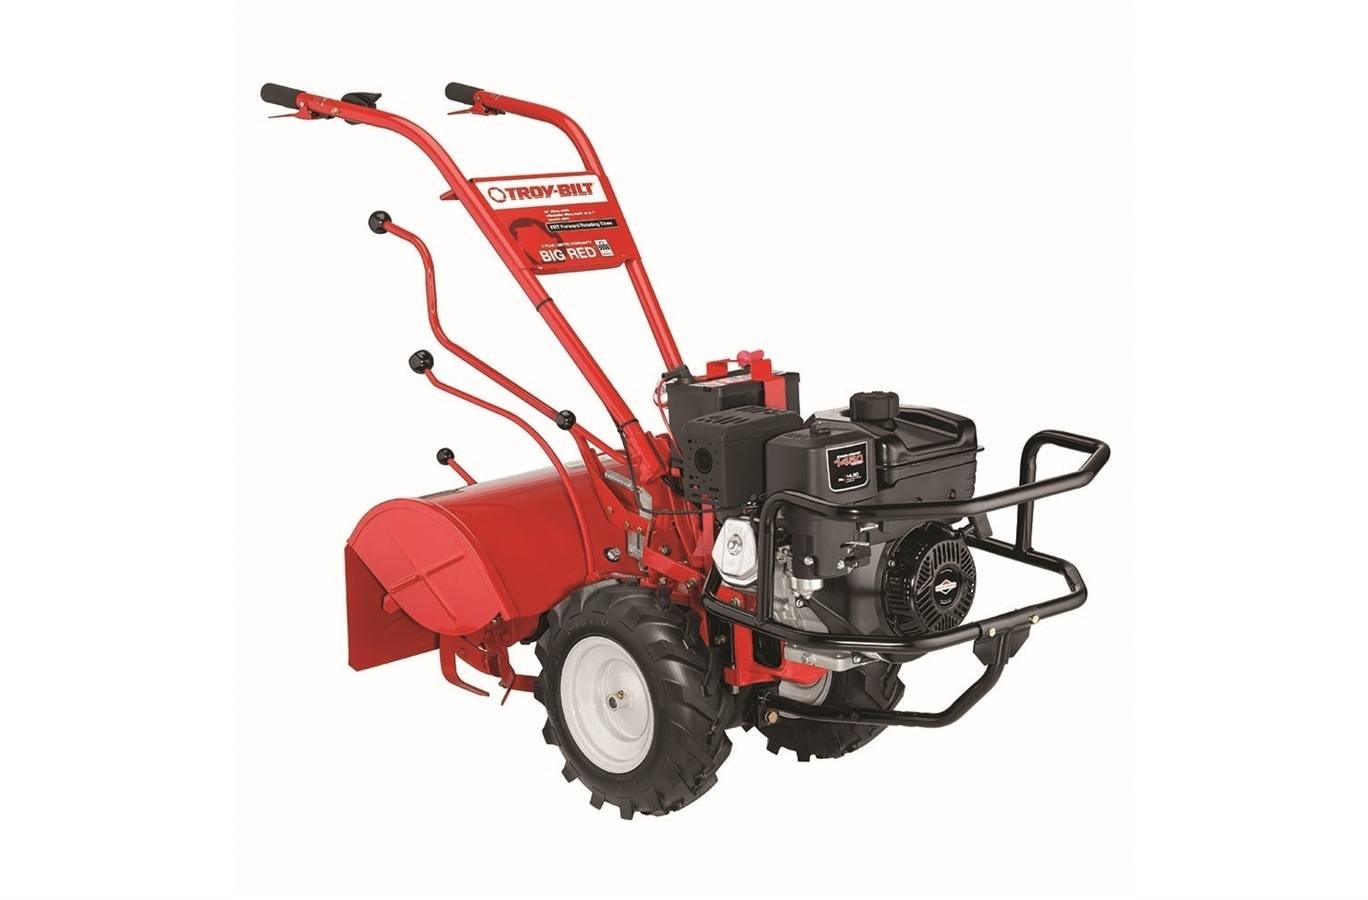 inventory from troy-bilt liberty discount lawn equipment upperco